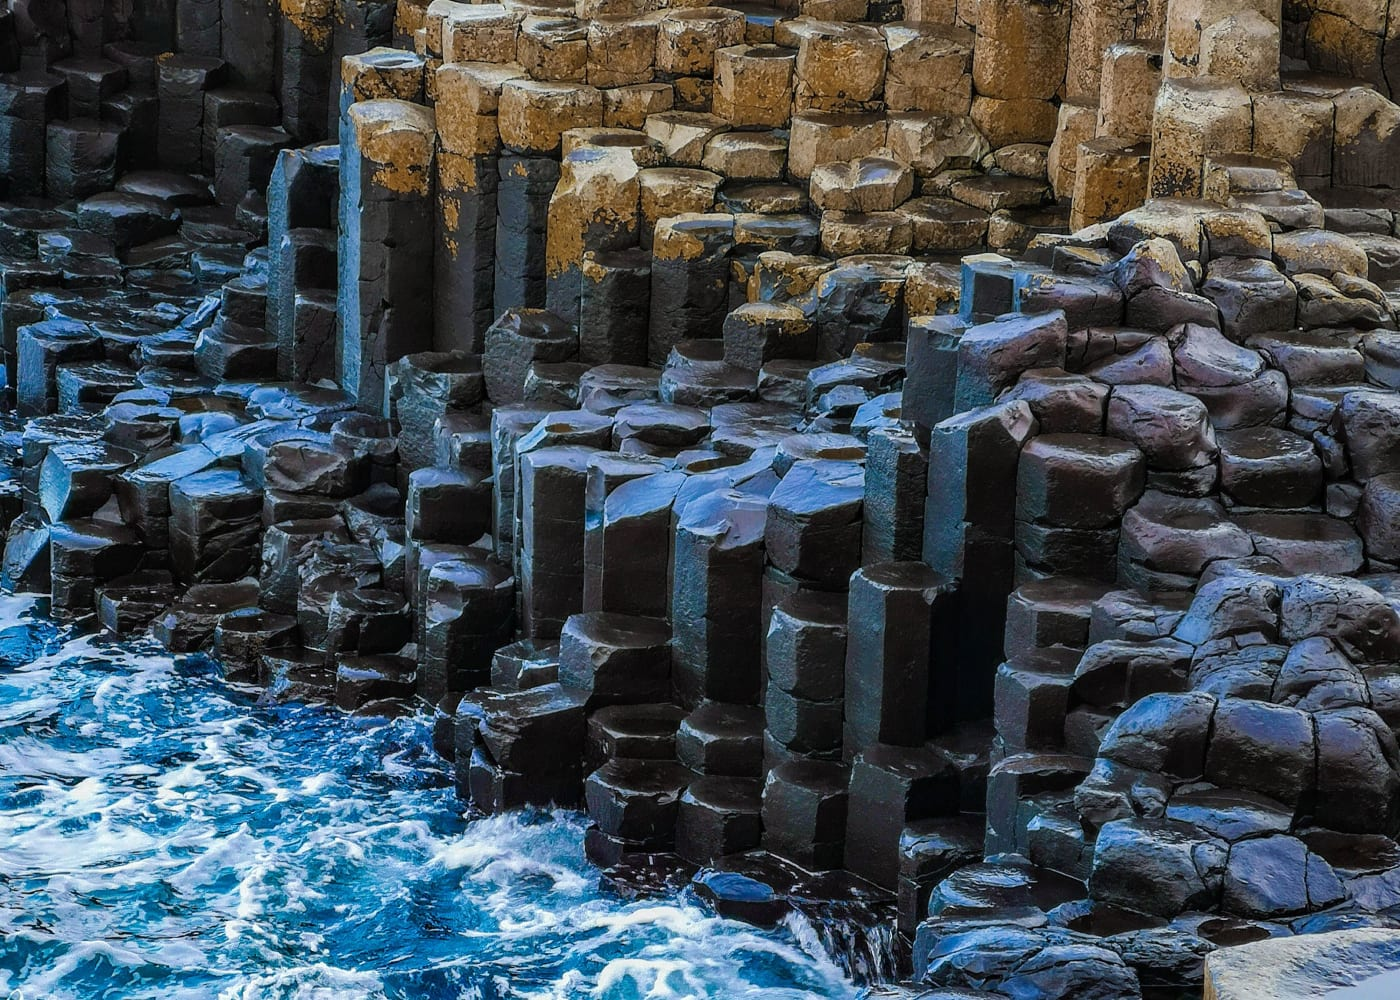 giants-causeway family friendly hikes